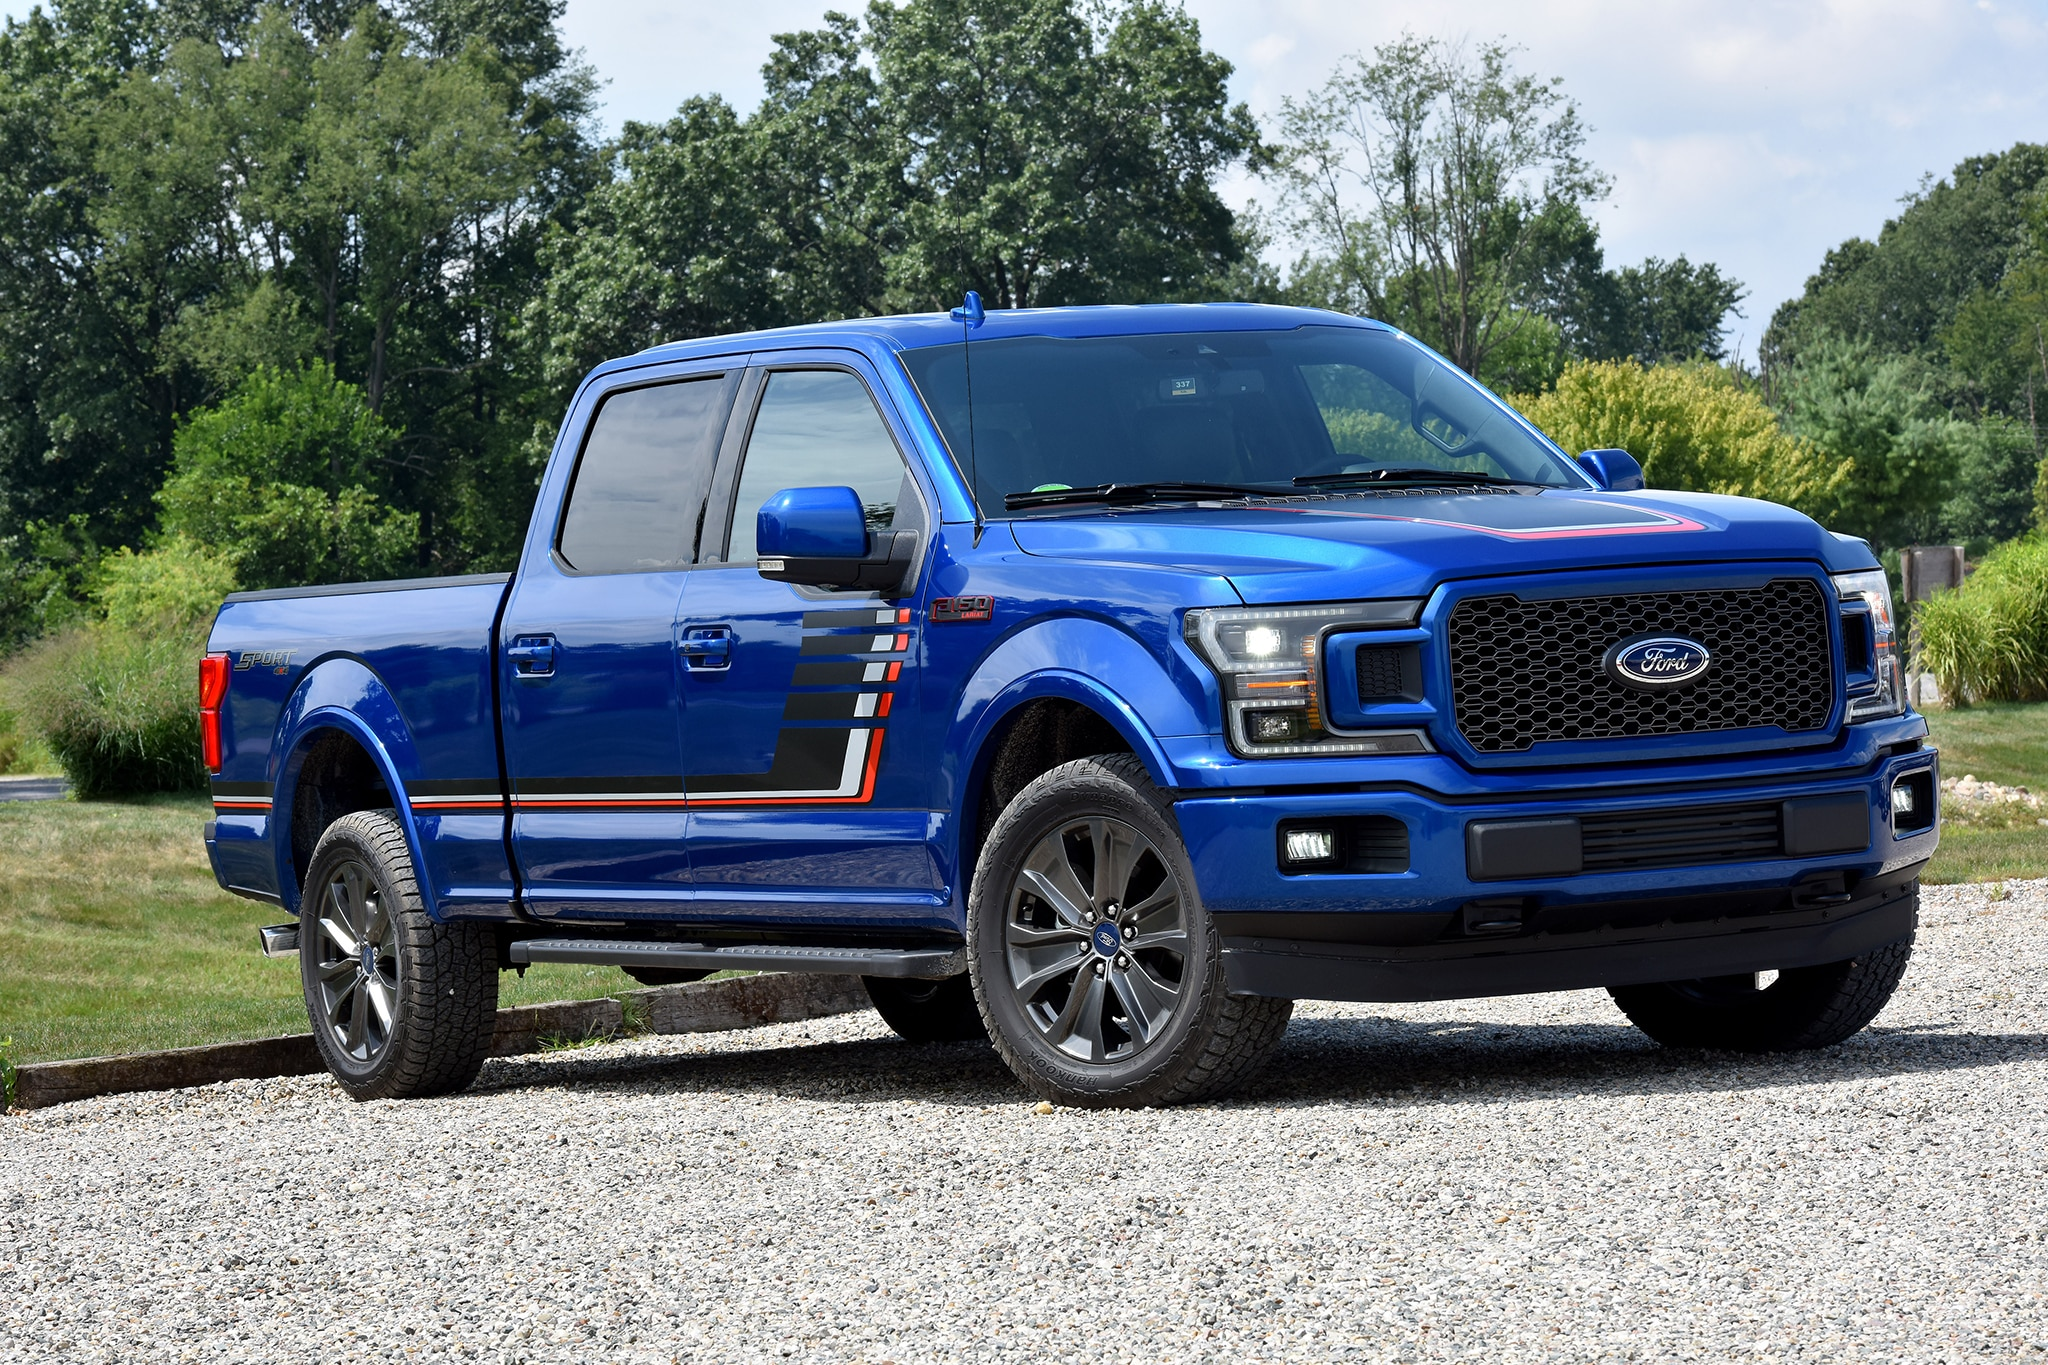 2018 ford f 150 xlt. Black Bedroom Furniture Sets. Home Design Ideas